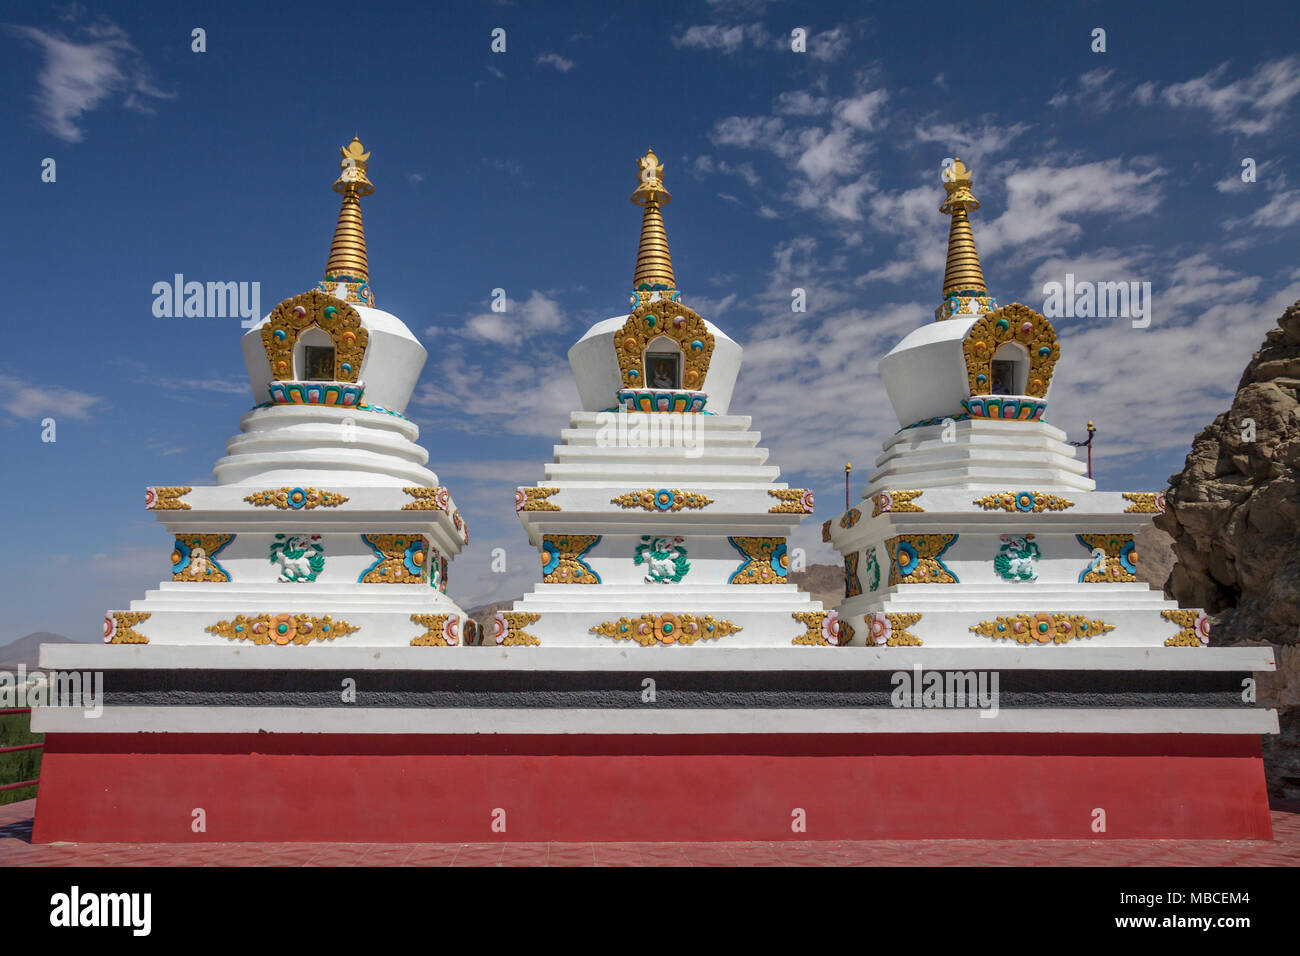 Outside Thiksay Gompa or Monastery - about 20km from Leh - are three ornate stupas.  Thiksey is affiliated with the Gelug sect of Tibetan Buddhism. Stock Photo